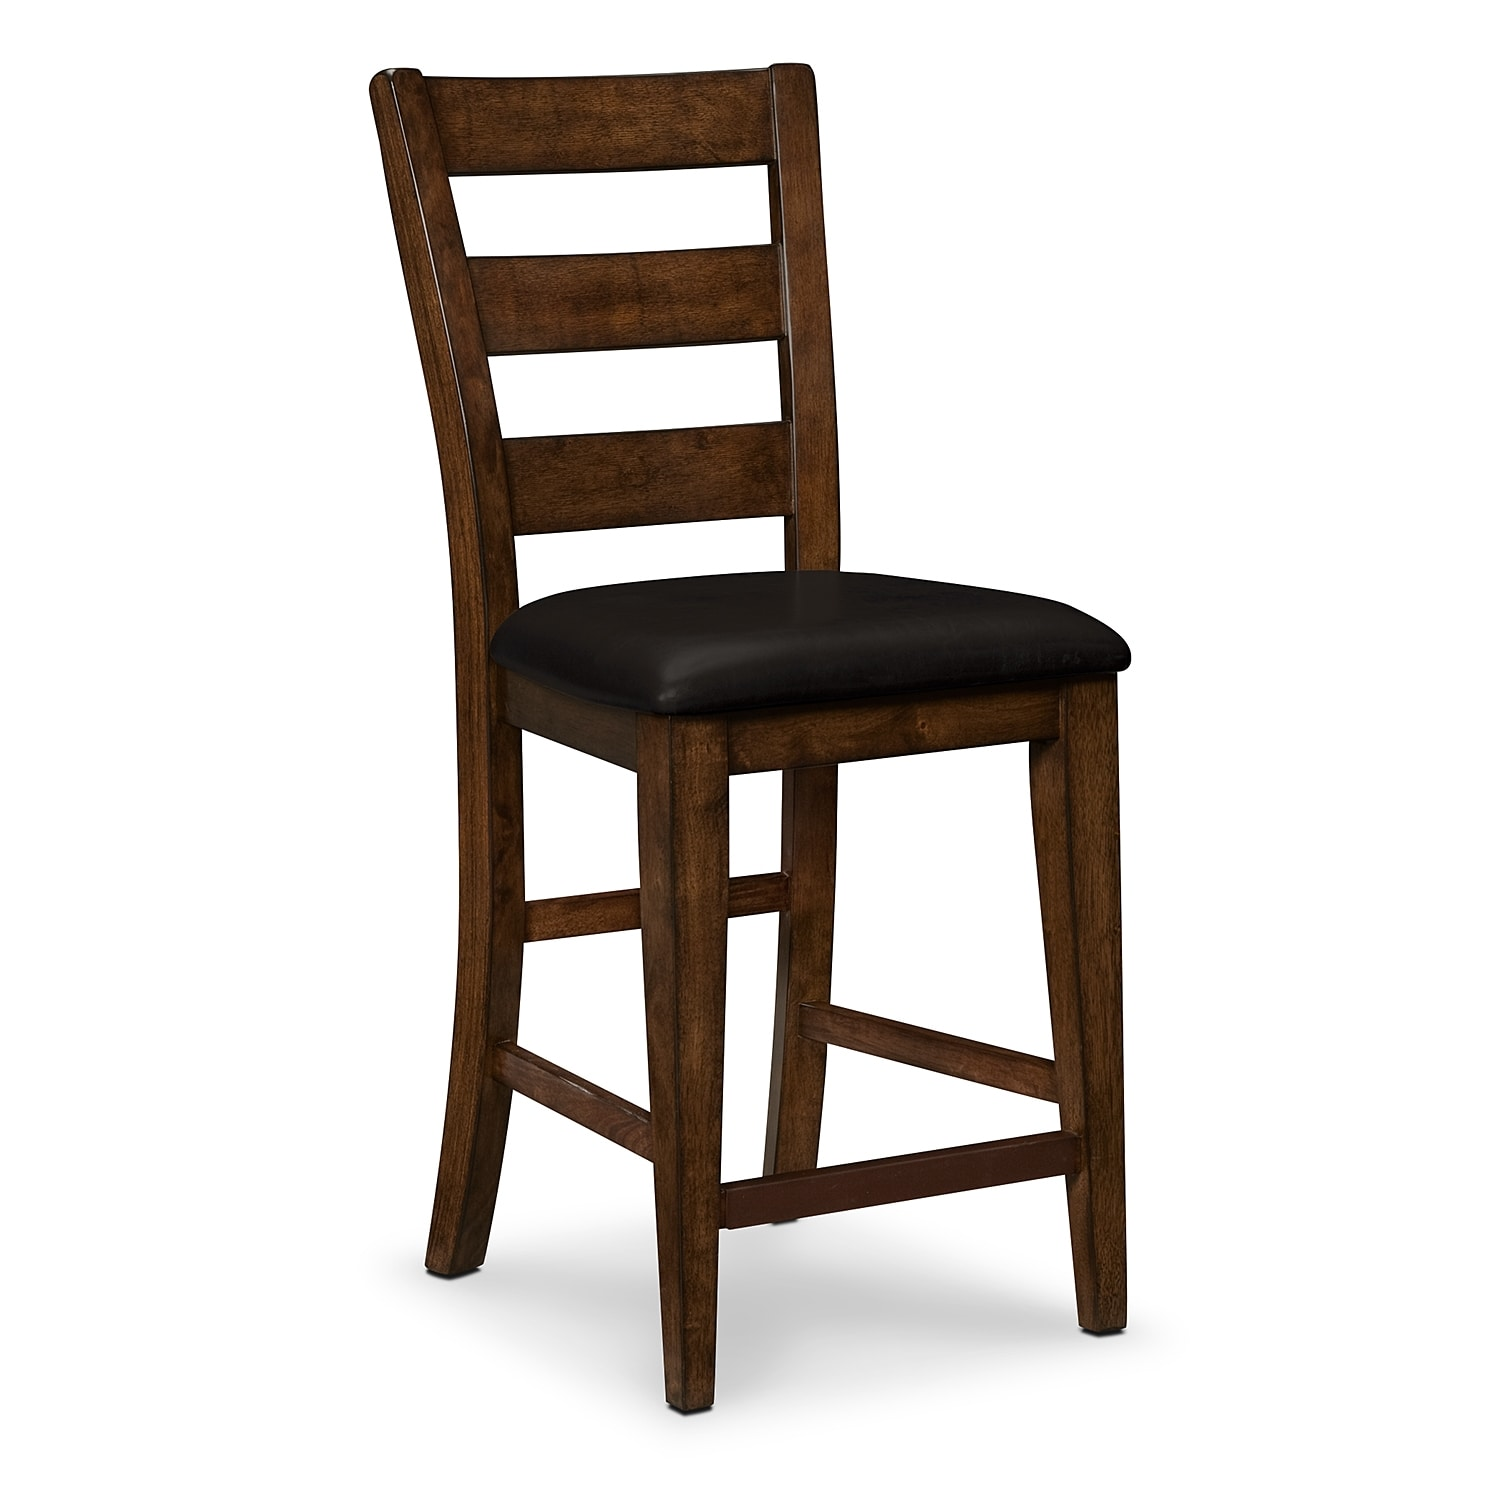 Dining Room Furniture - Harbor Pointe Counter-Height Stool - Oak